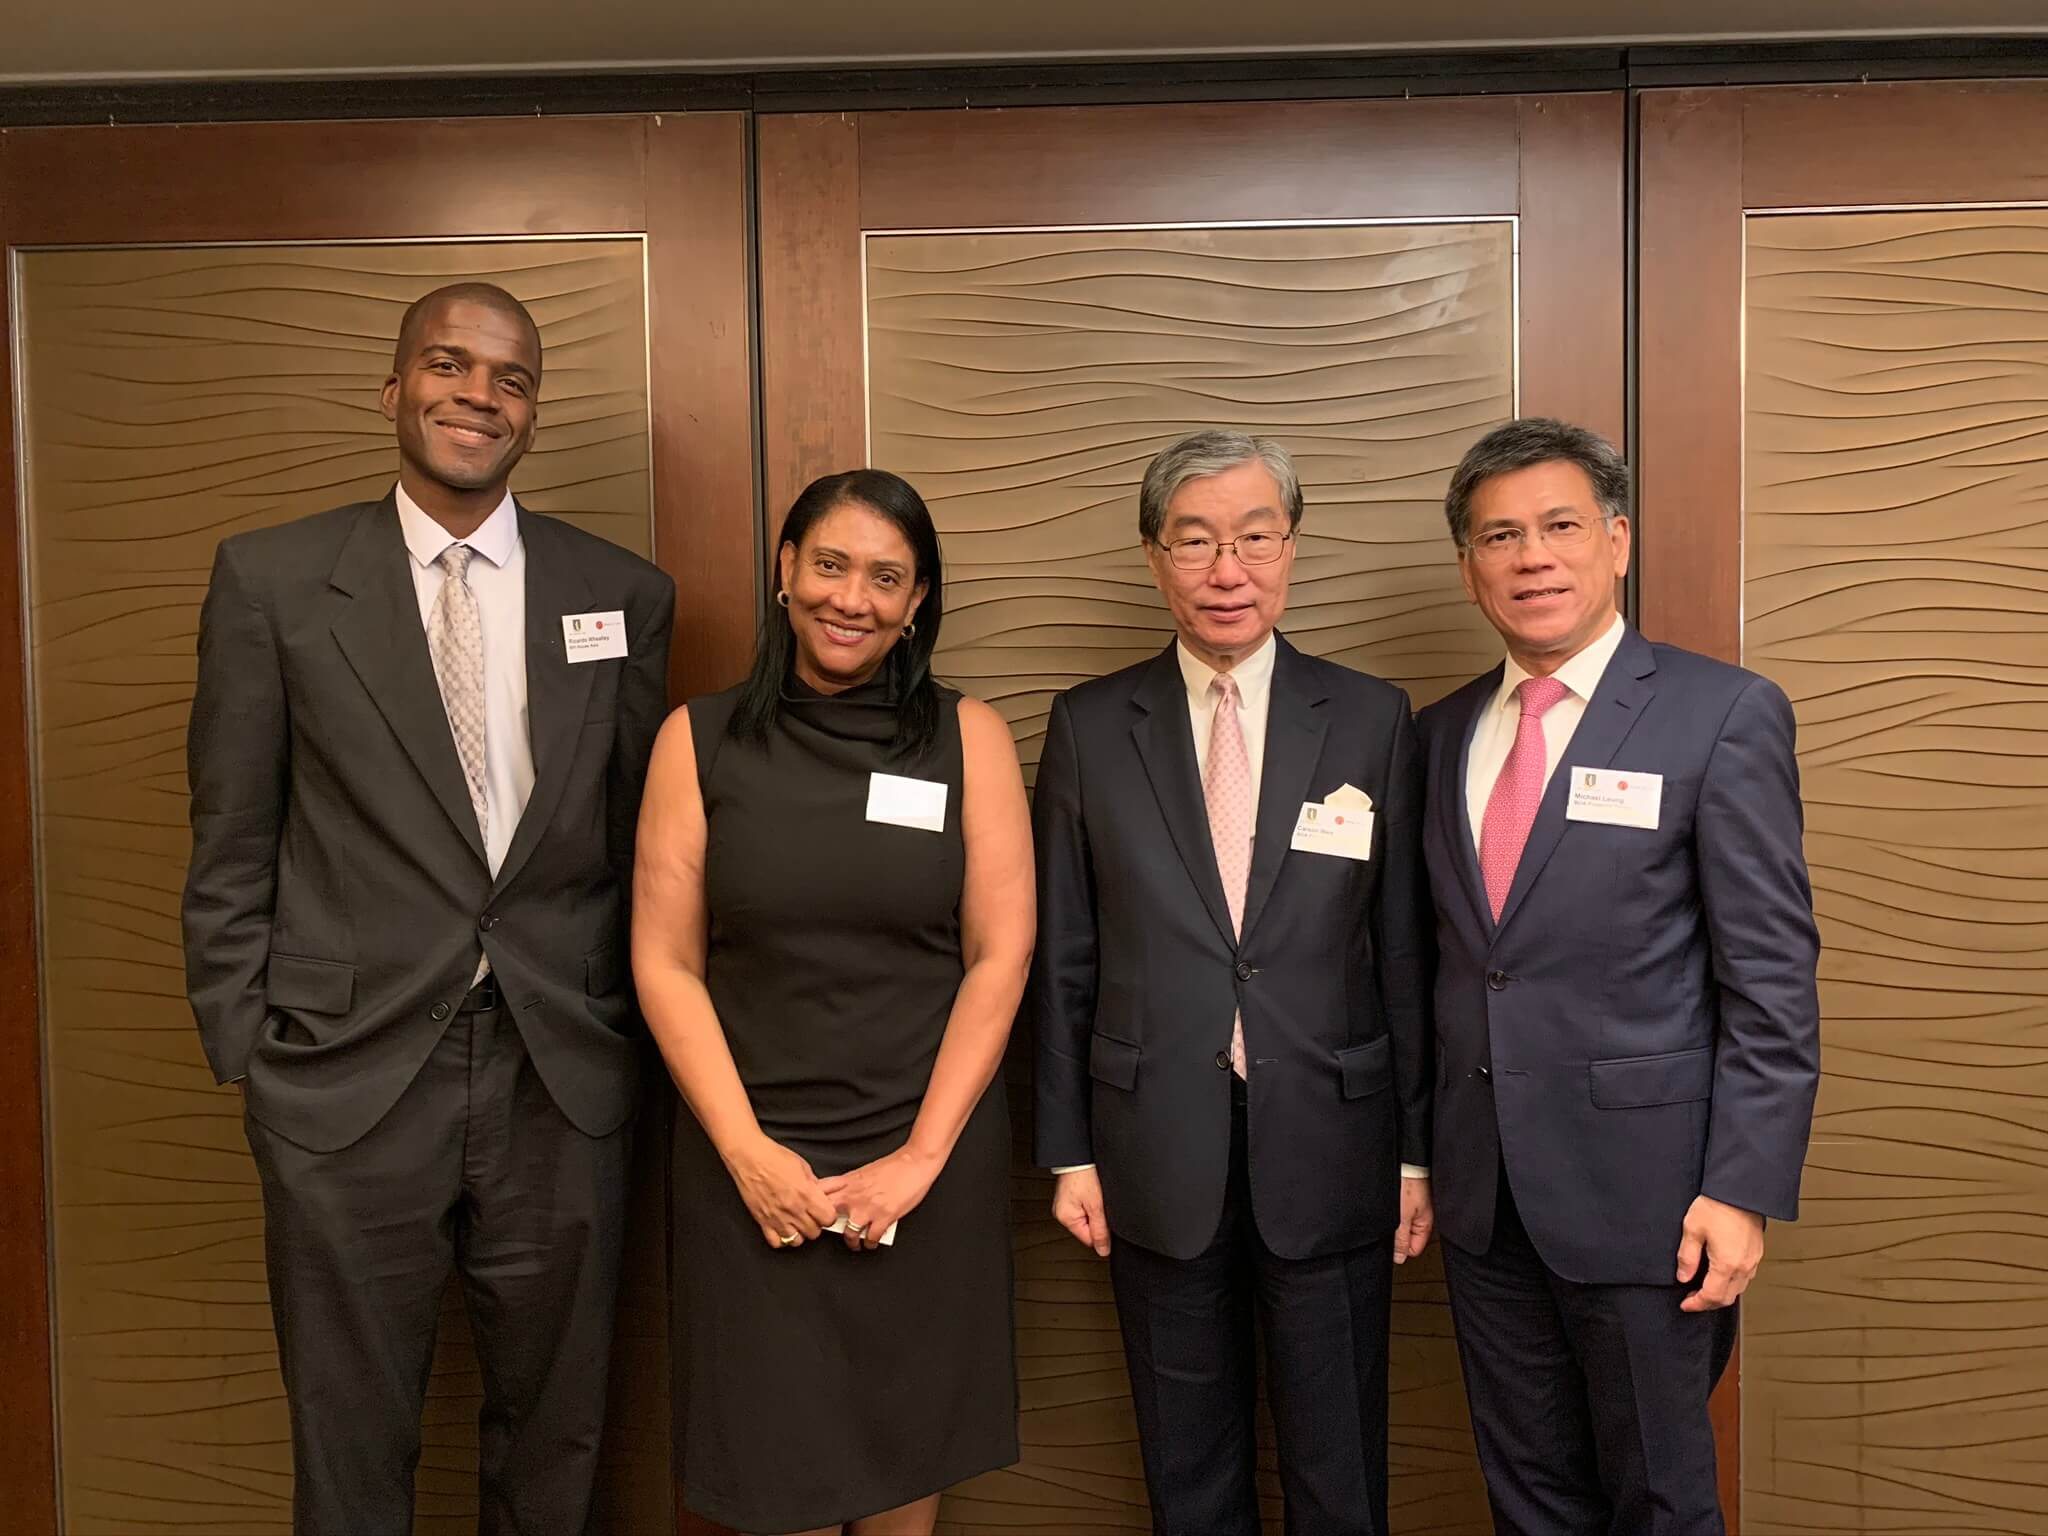 From Left to Right: Dr. Ricardo Wheatley, Director of BVI House of Asia; Mrs. Sherri Ortiz, Former Director of BVI House of Asia; Mr. Carson Wen, Founder and Chairman of Bank of Asia; Mr. Michael Leung; CEO of BOA International Financial group.